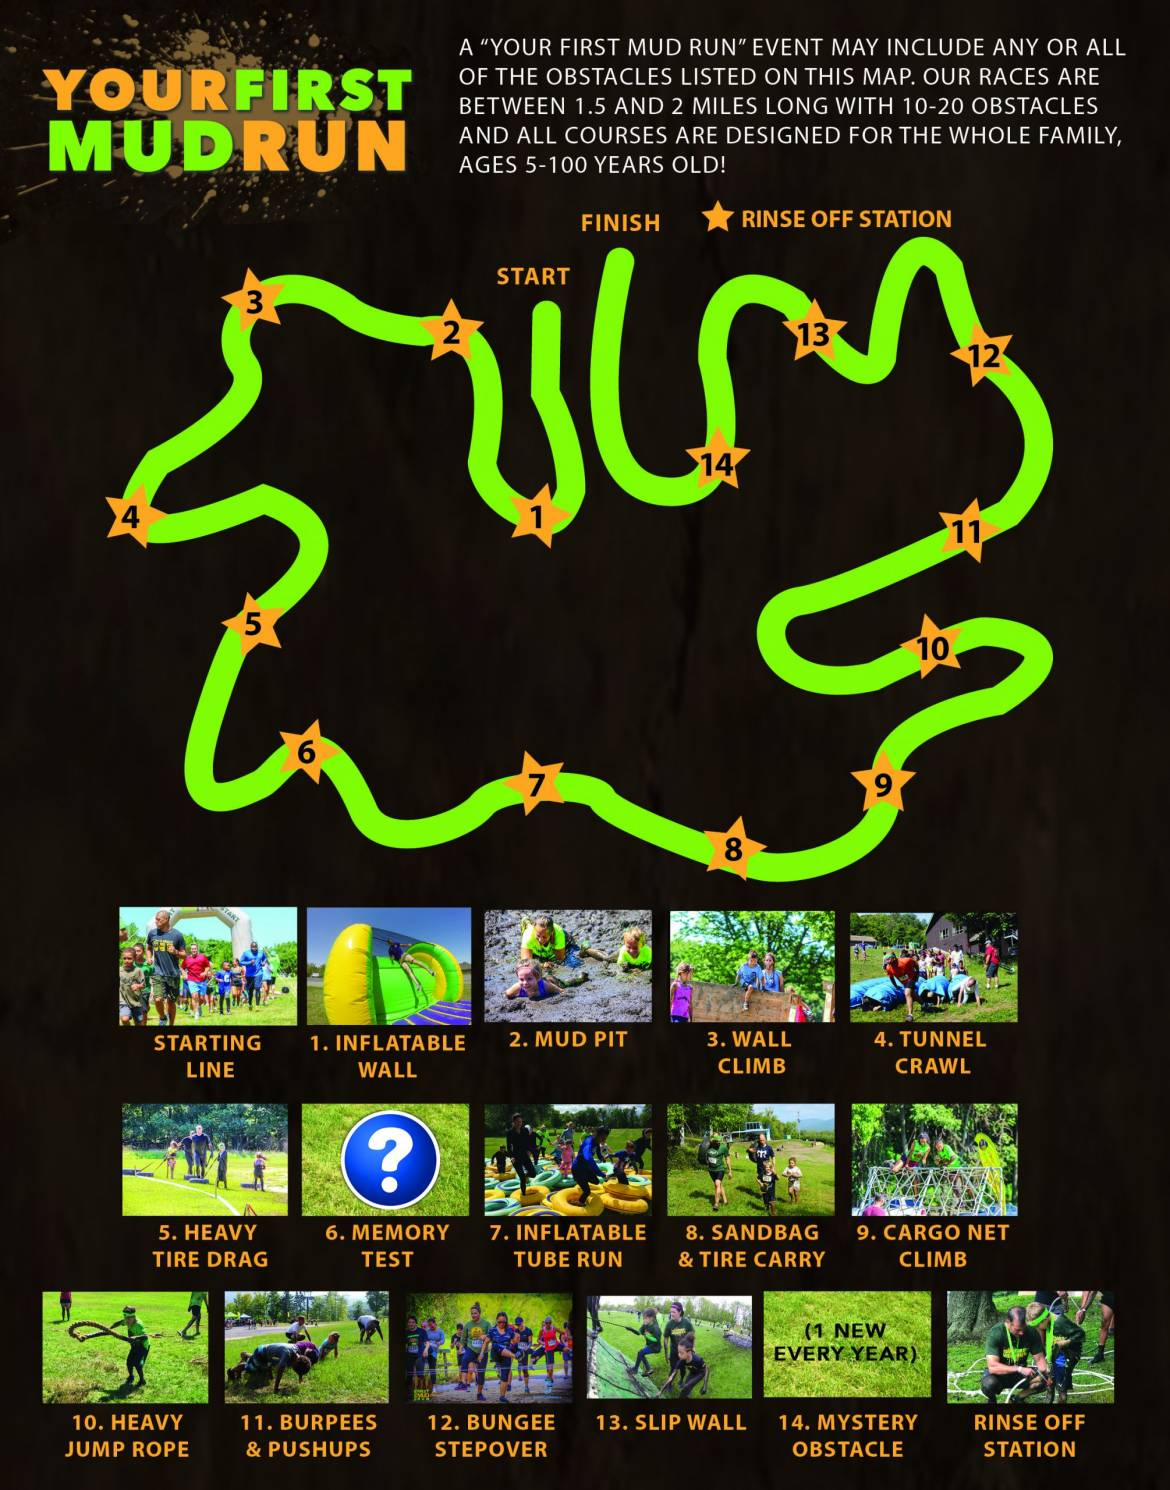 YFMR-course_map-version-1_REV-01-scaled-1.jpg